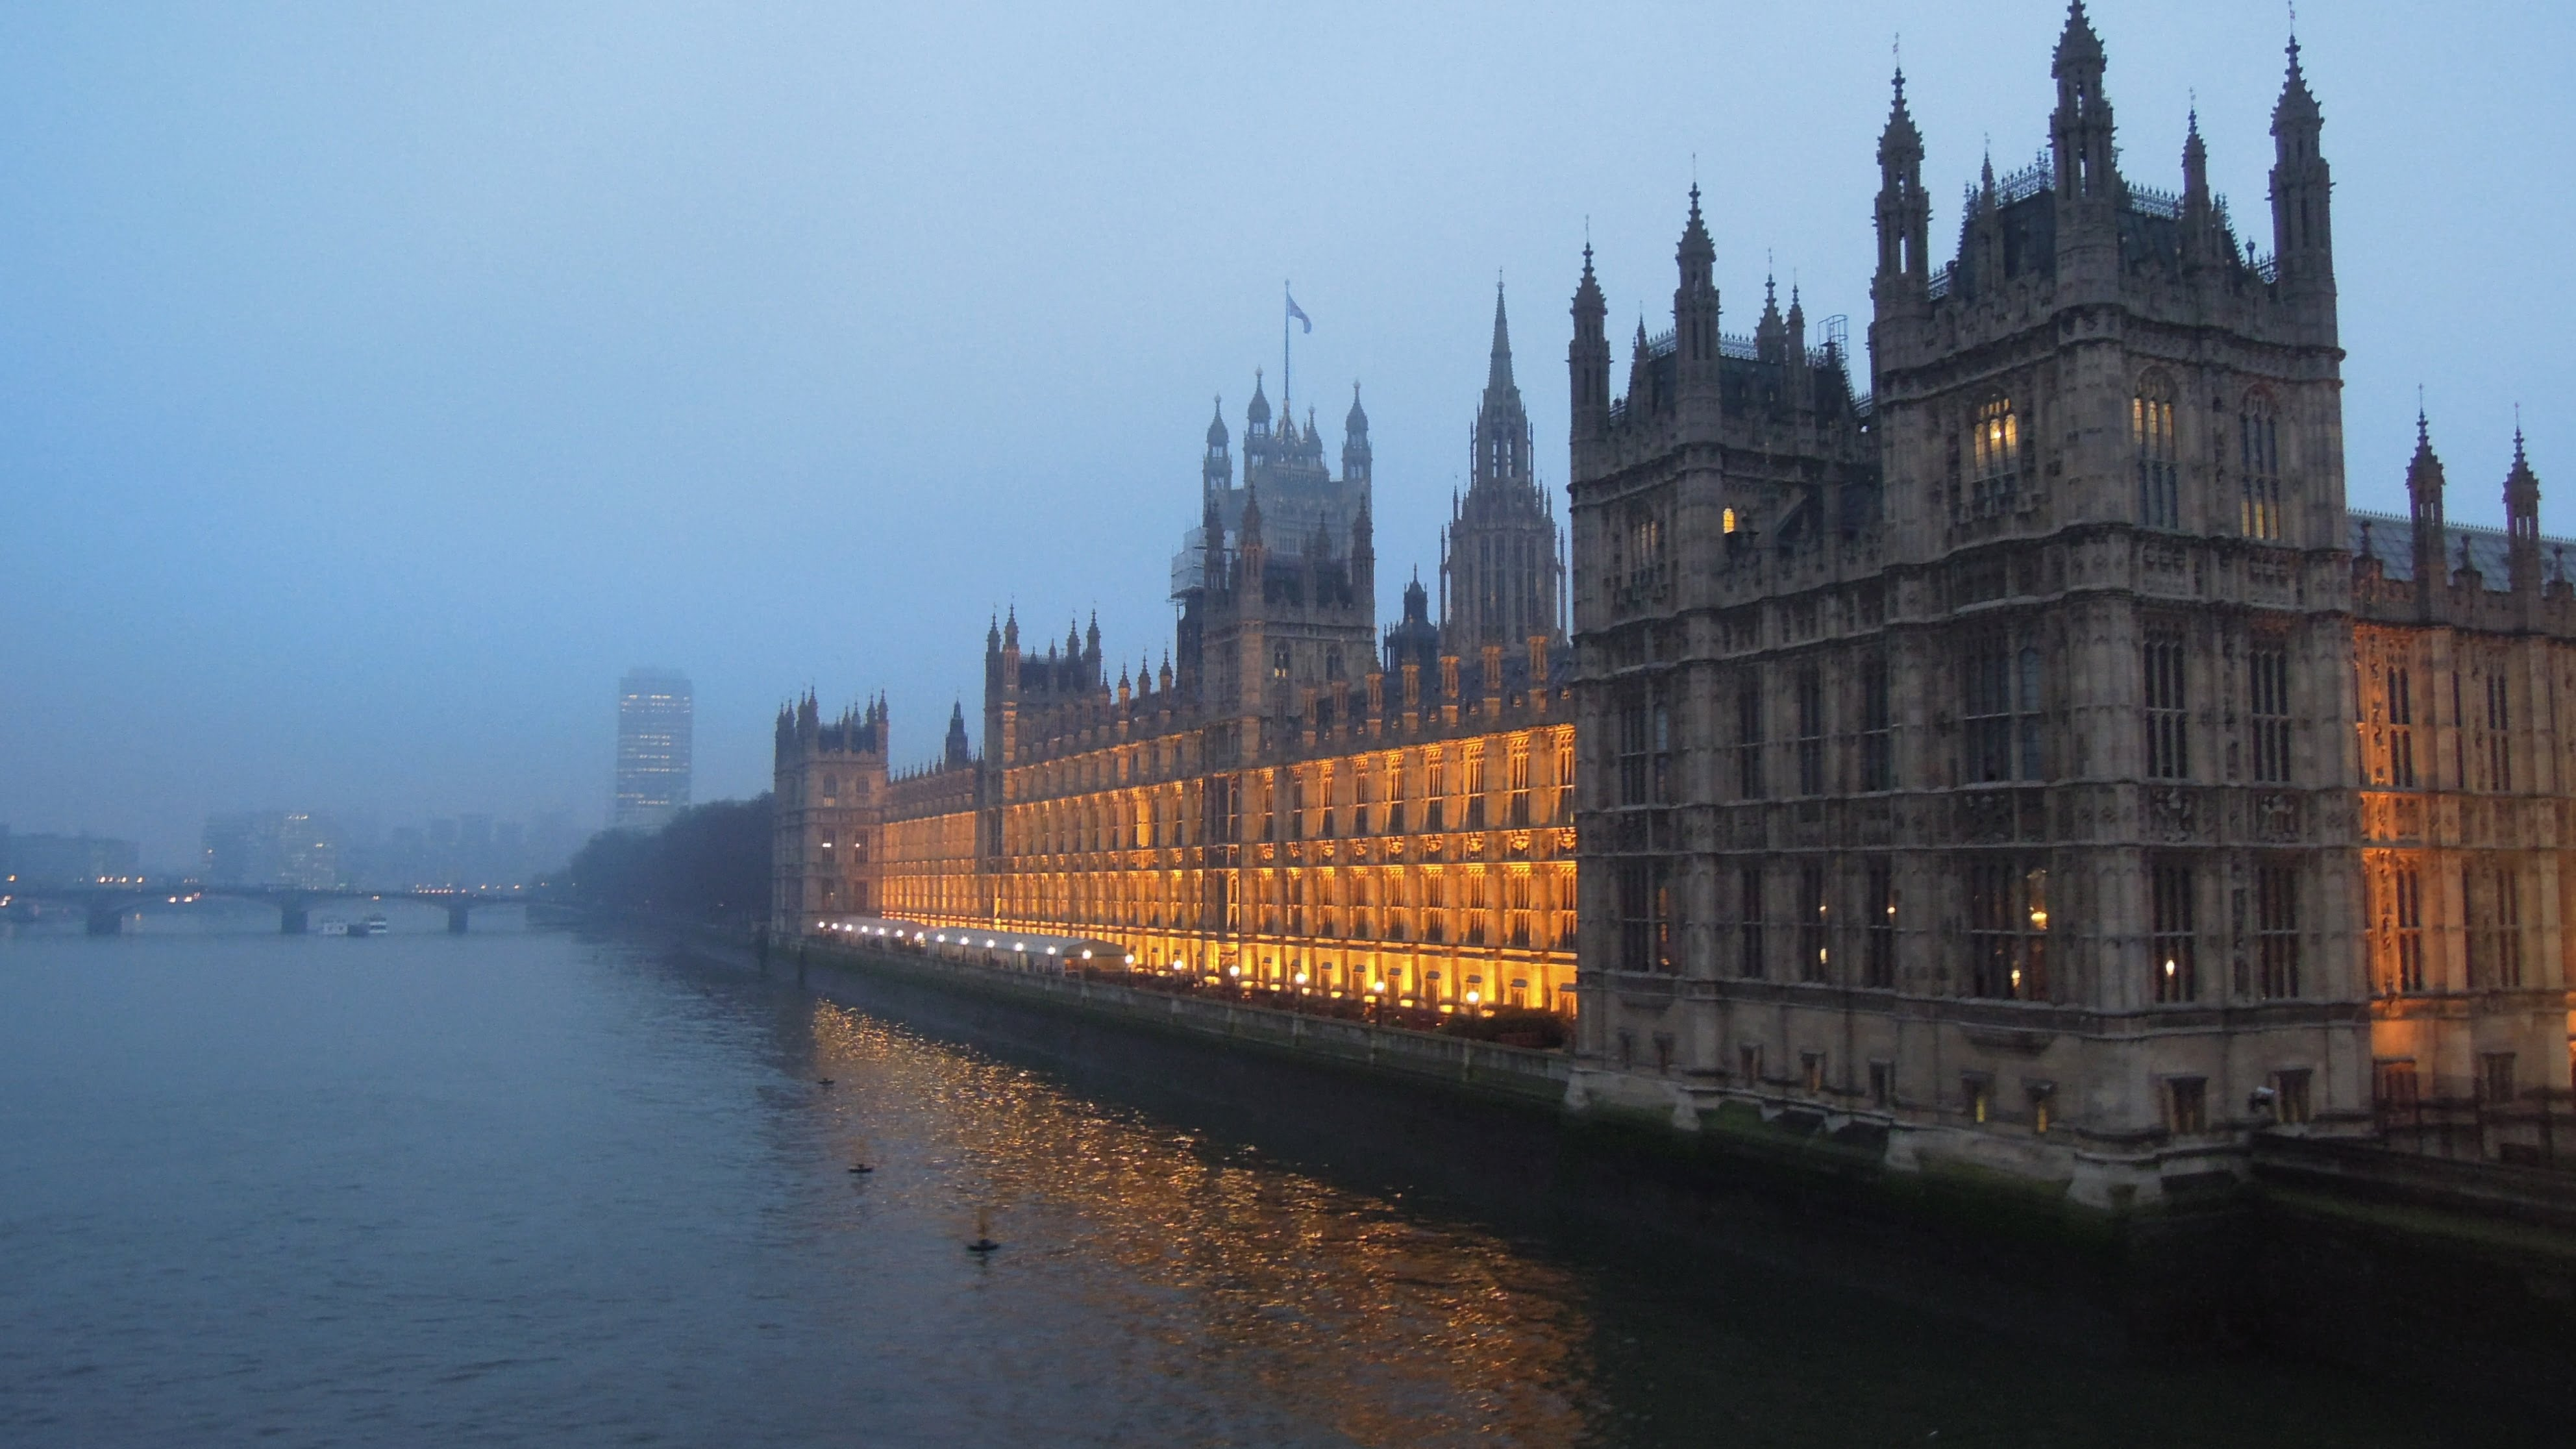 Palace of Westminster 12